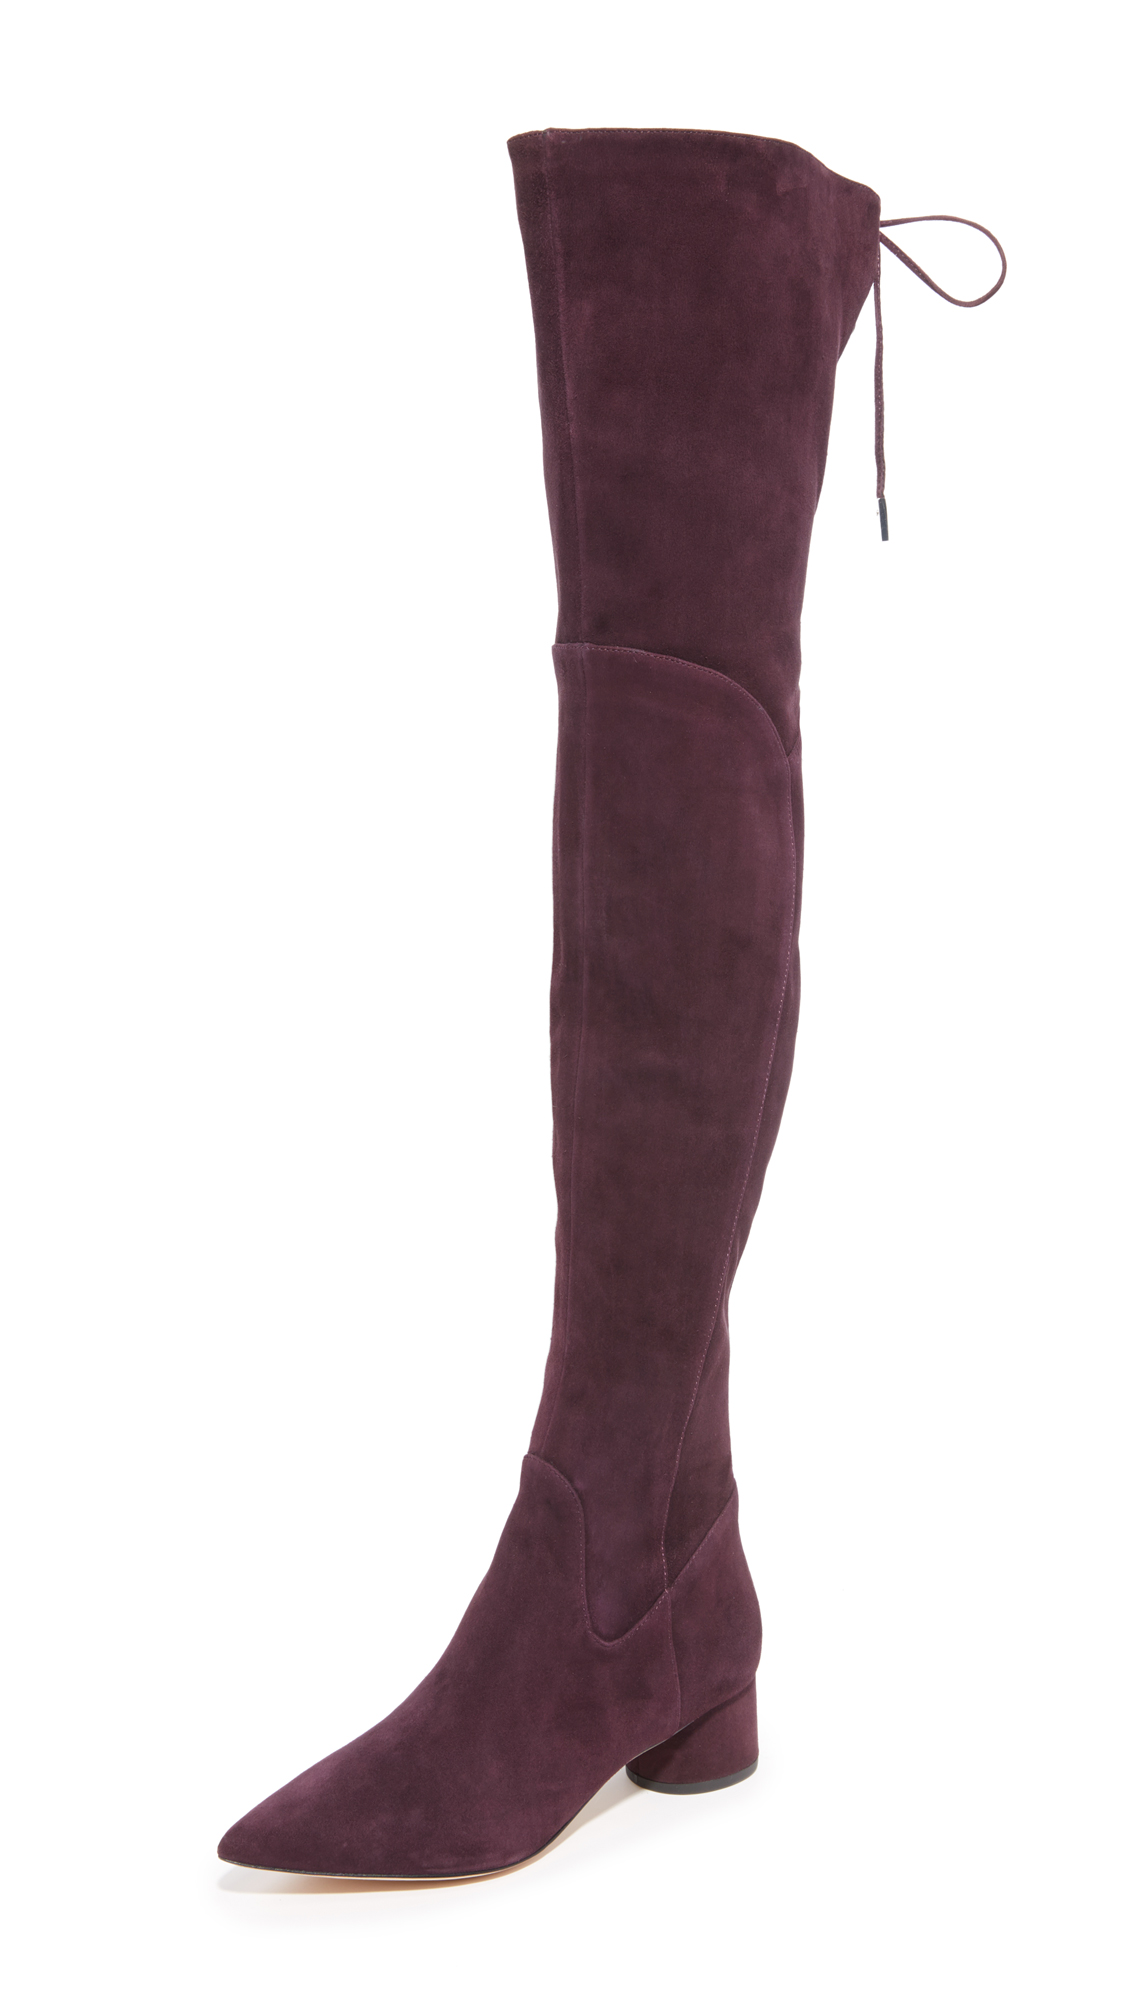 Sigerson Morrison Zetan Over The Knee Boots - Bordo